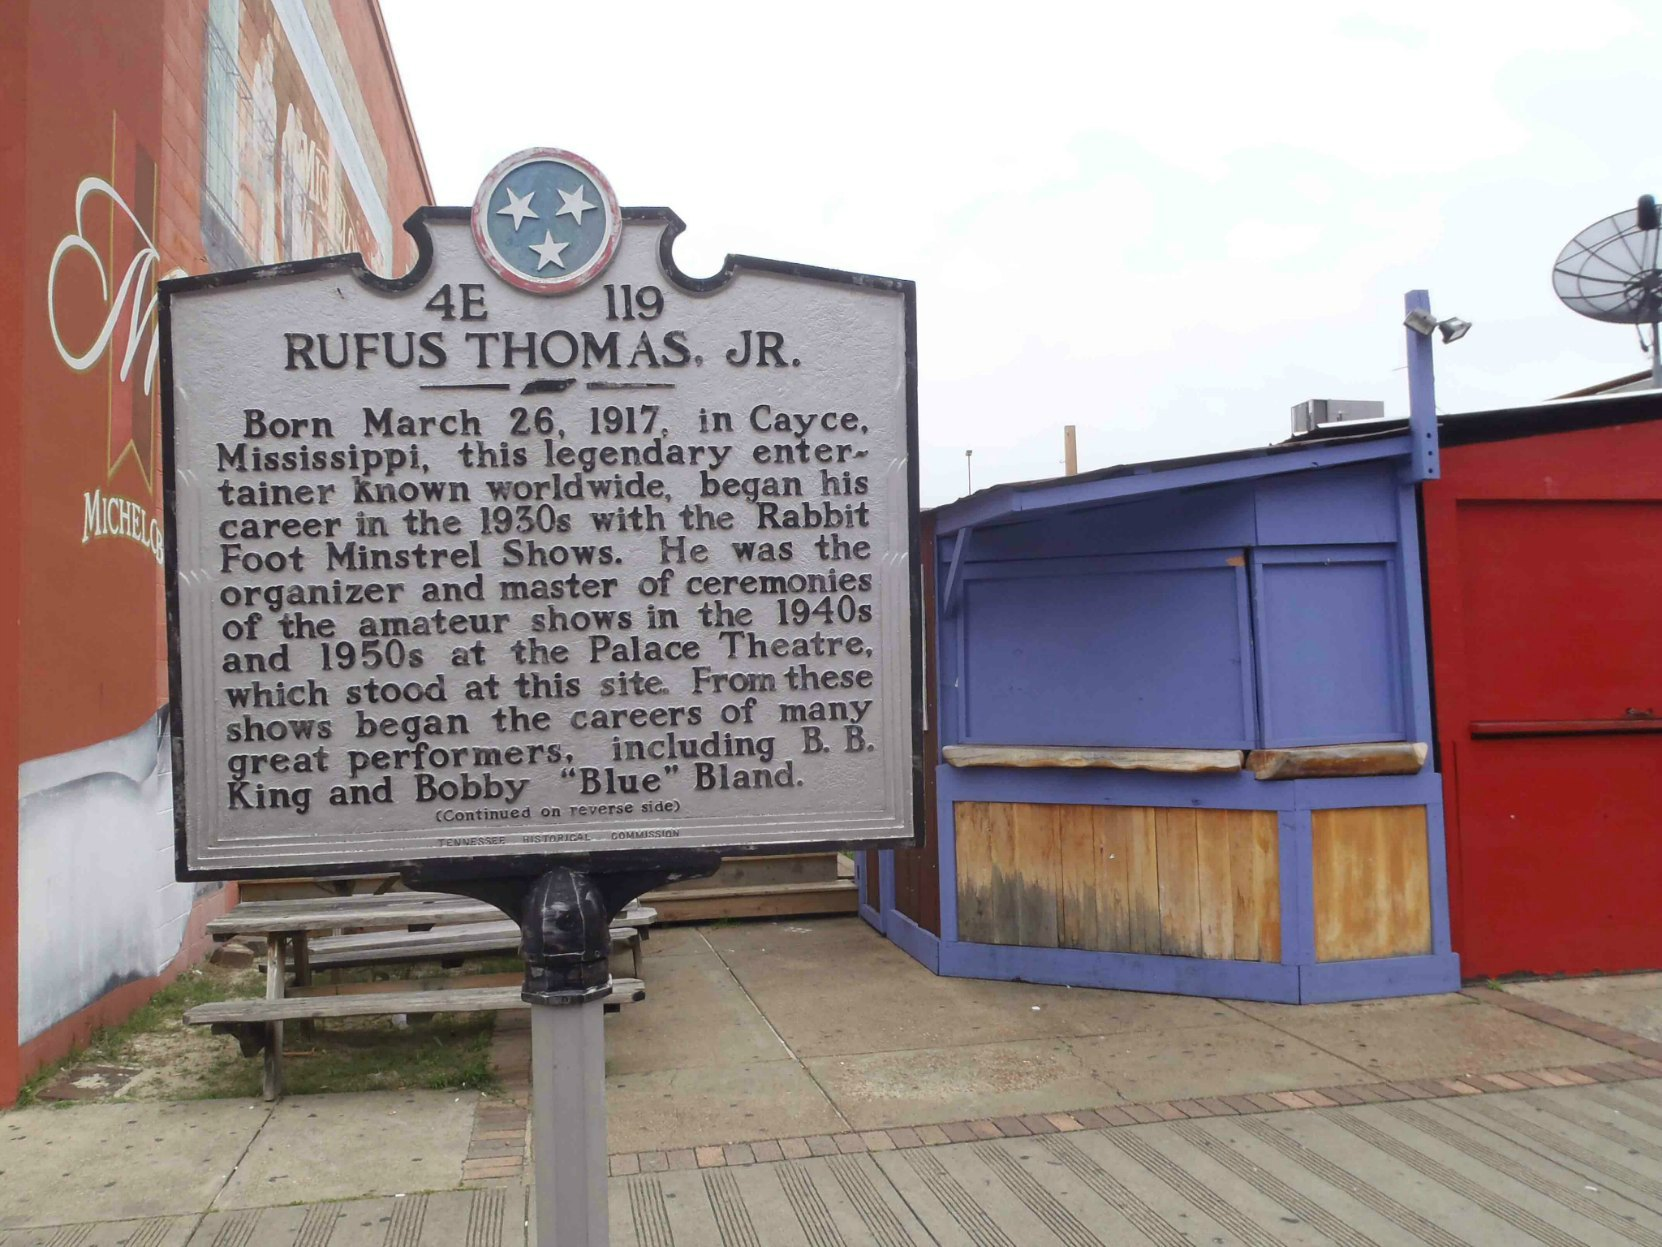 Tennessee Historical Commission marker for Rufus Thomas Jr., Beale Street, Memphis, Tennessee